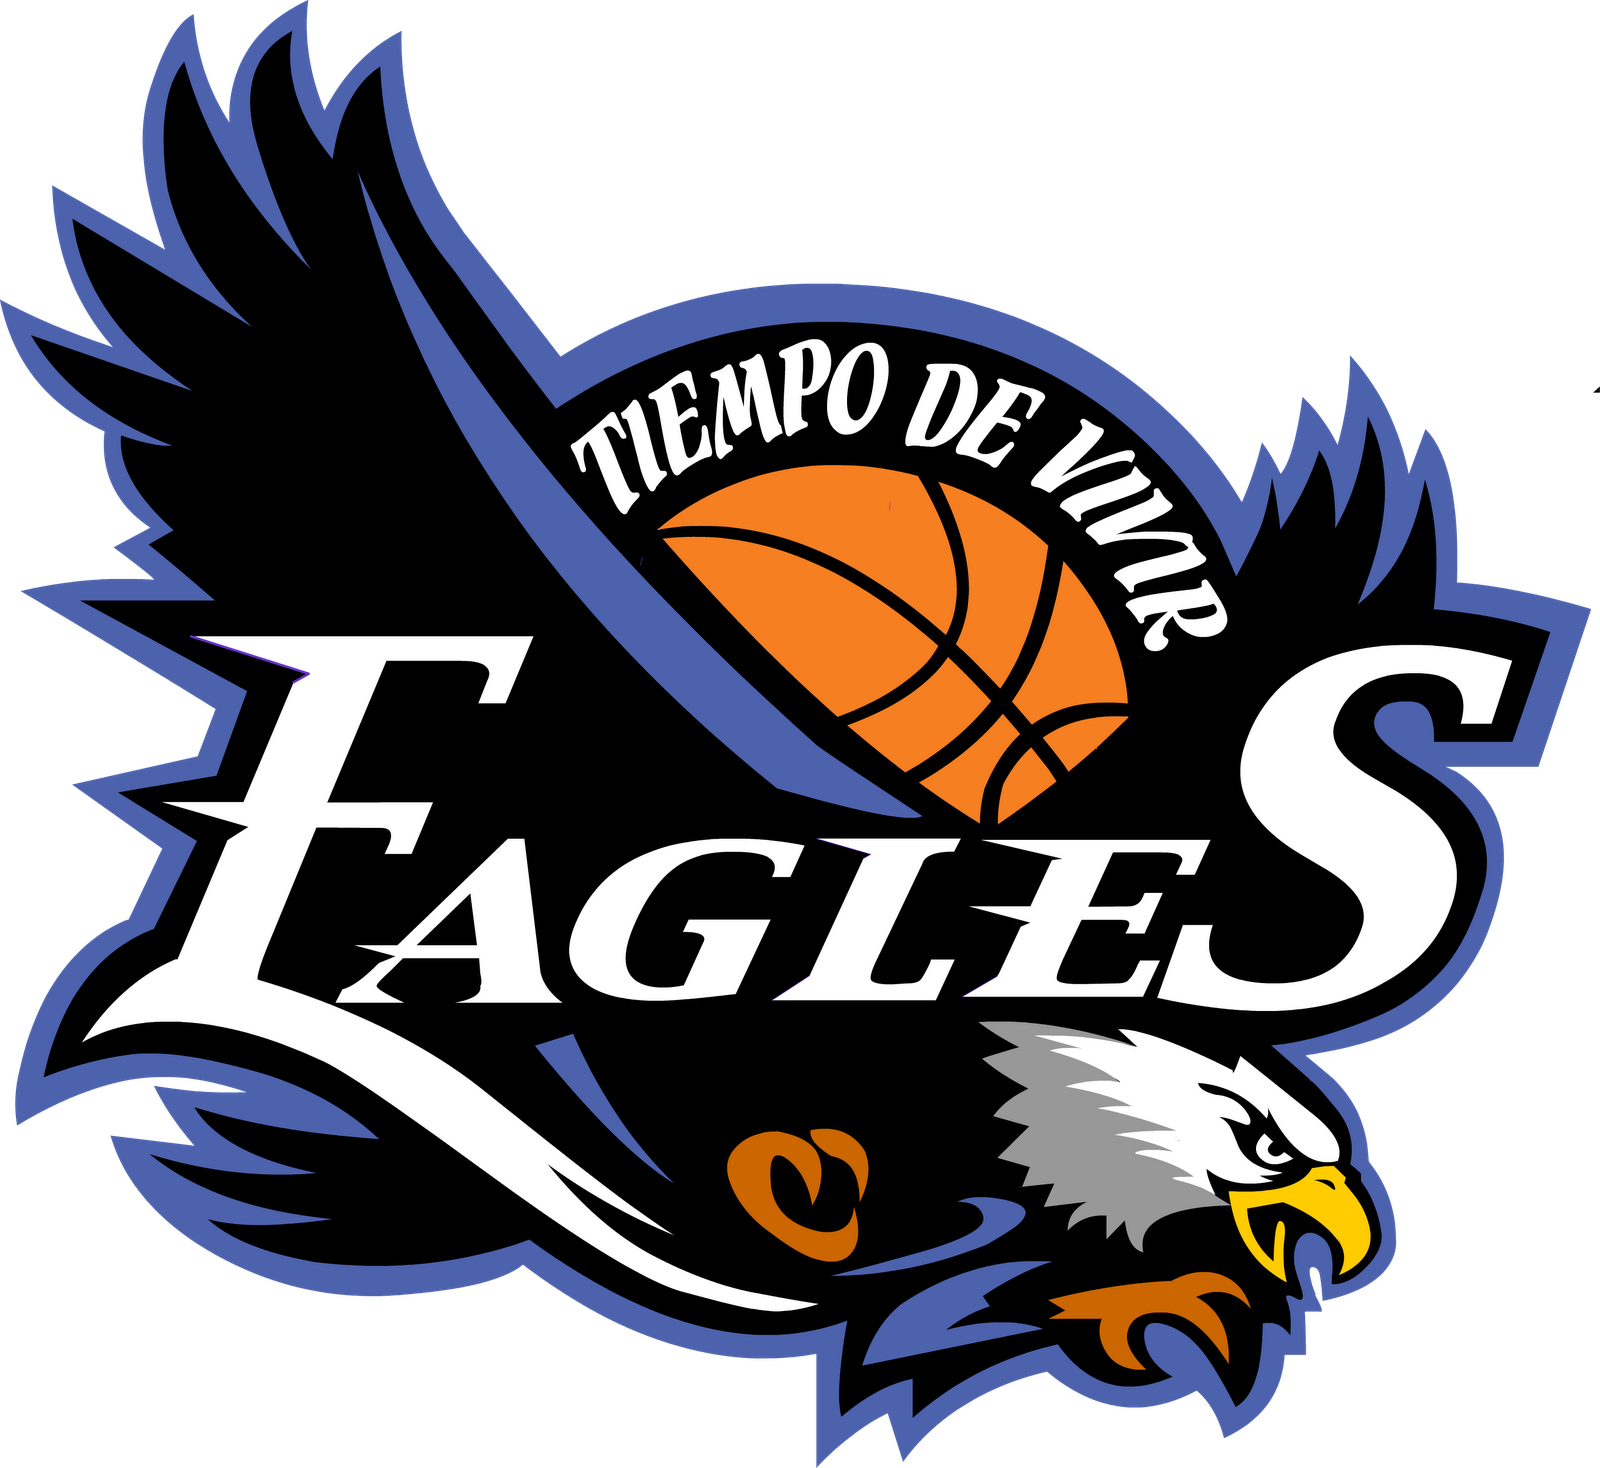 Basketball crest clipart svg free download Eagles Basketball Team Logo Clipart | Sport Logos | Pinterest ... svg free download